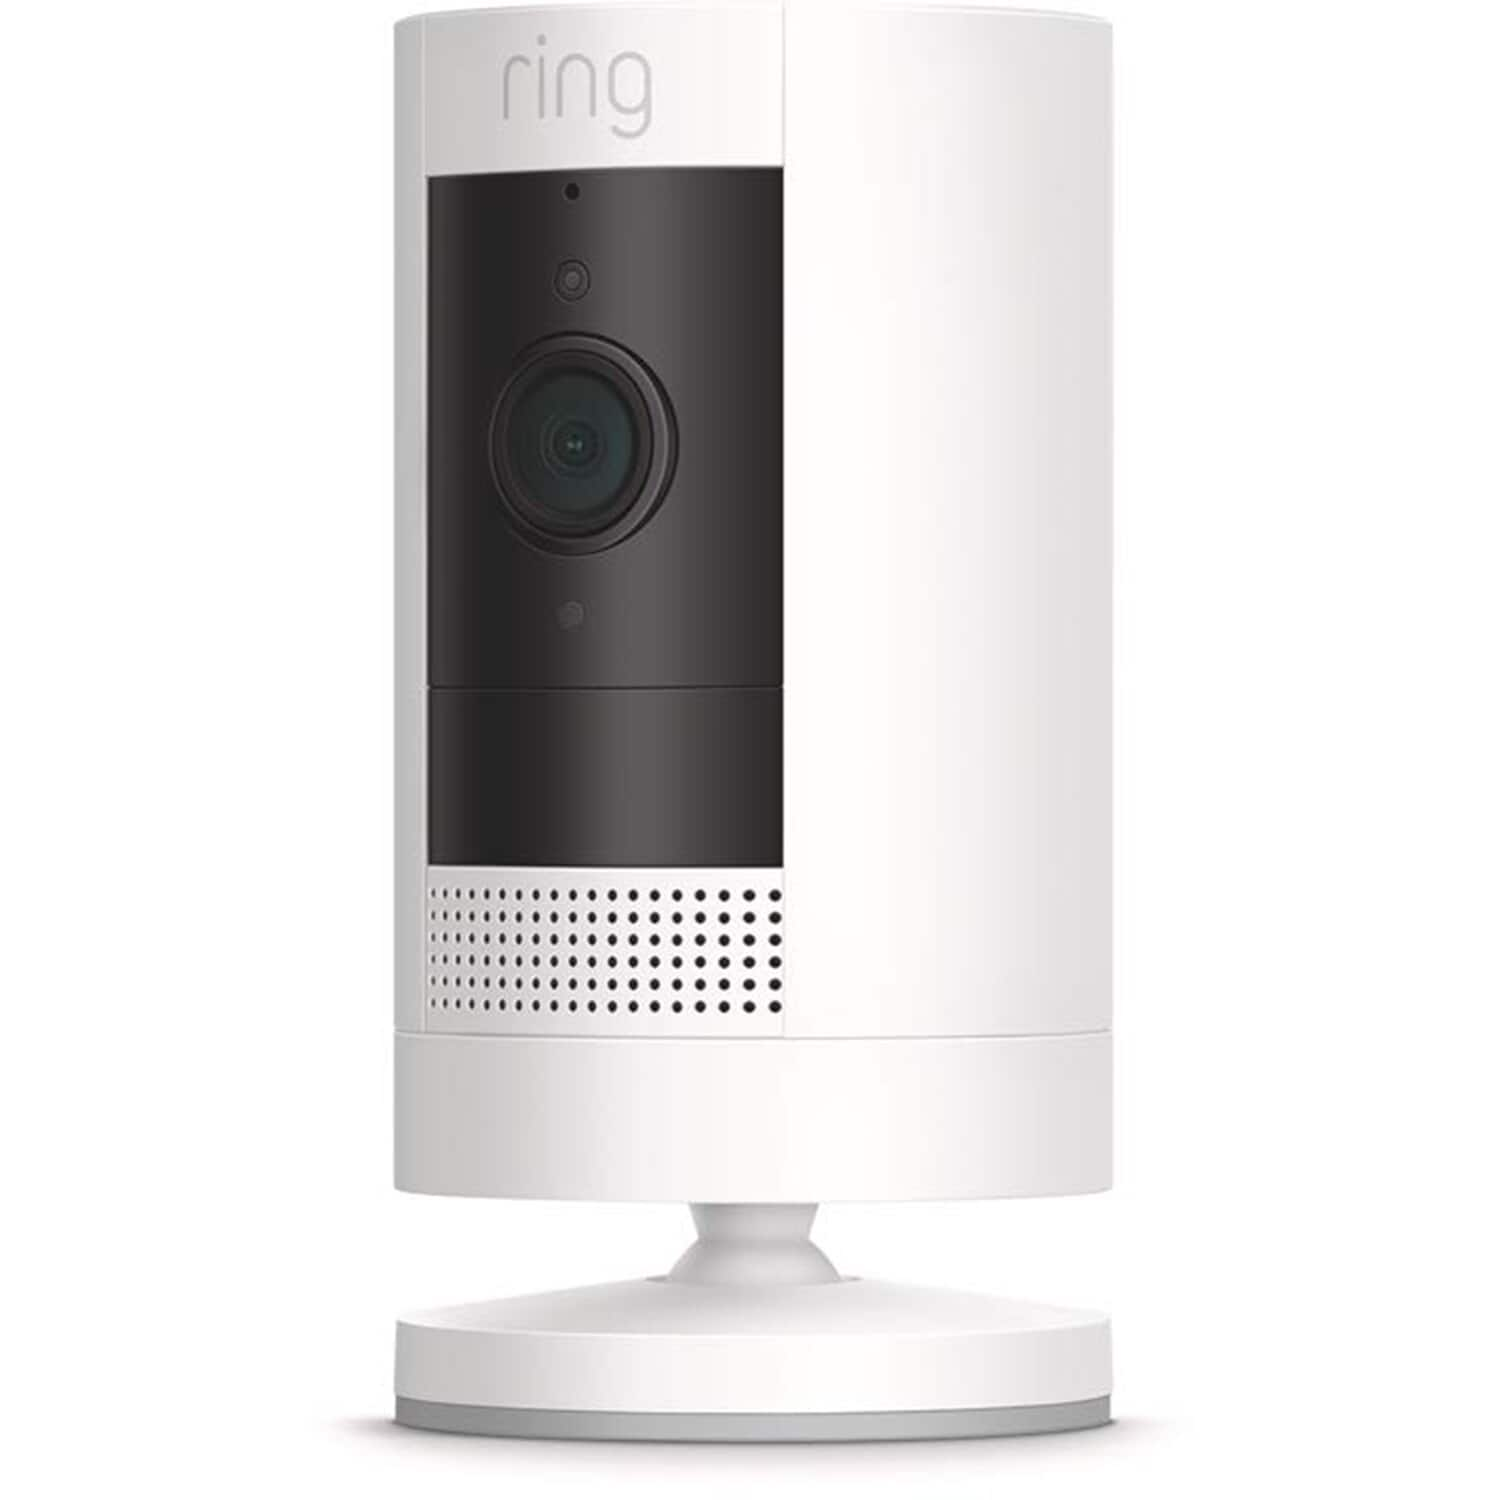 Ring Stick Up Cam Security Camera (New Model) - $69.99 After 20% New Customers Coupon + Free Shipping